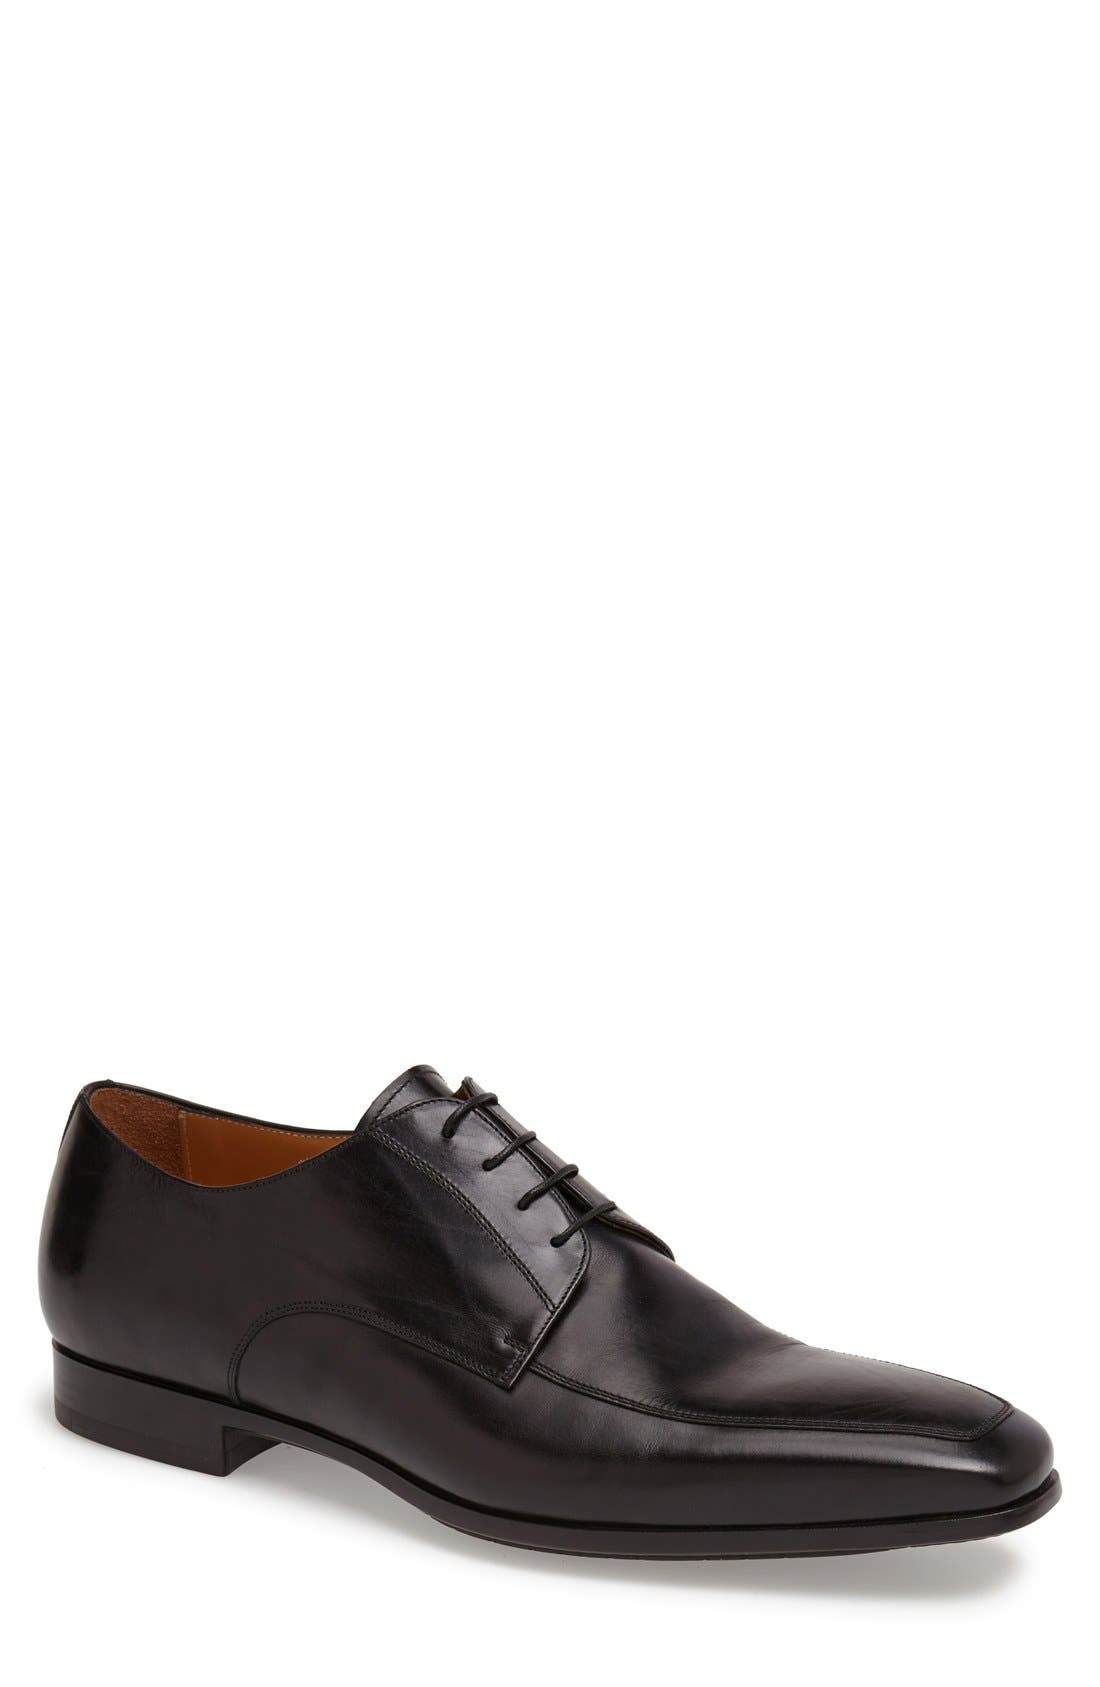 Main Image - Santoni 'Prichard' Apron Toe Derby (Men)